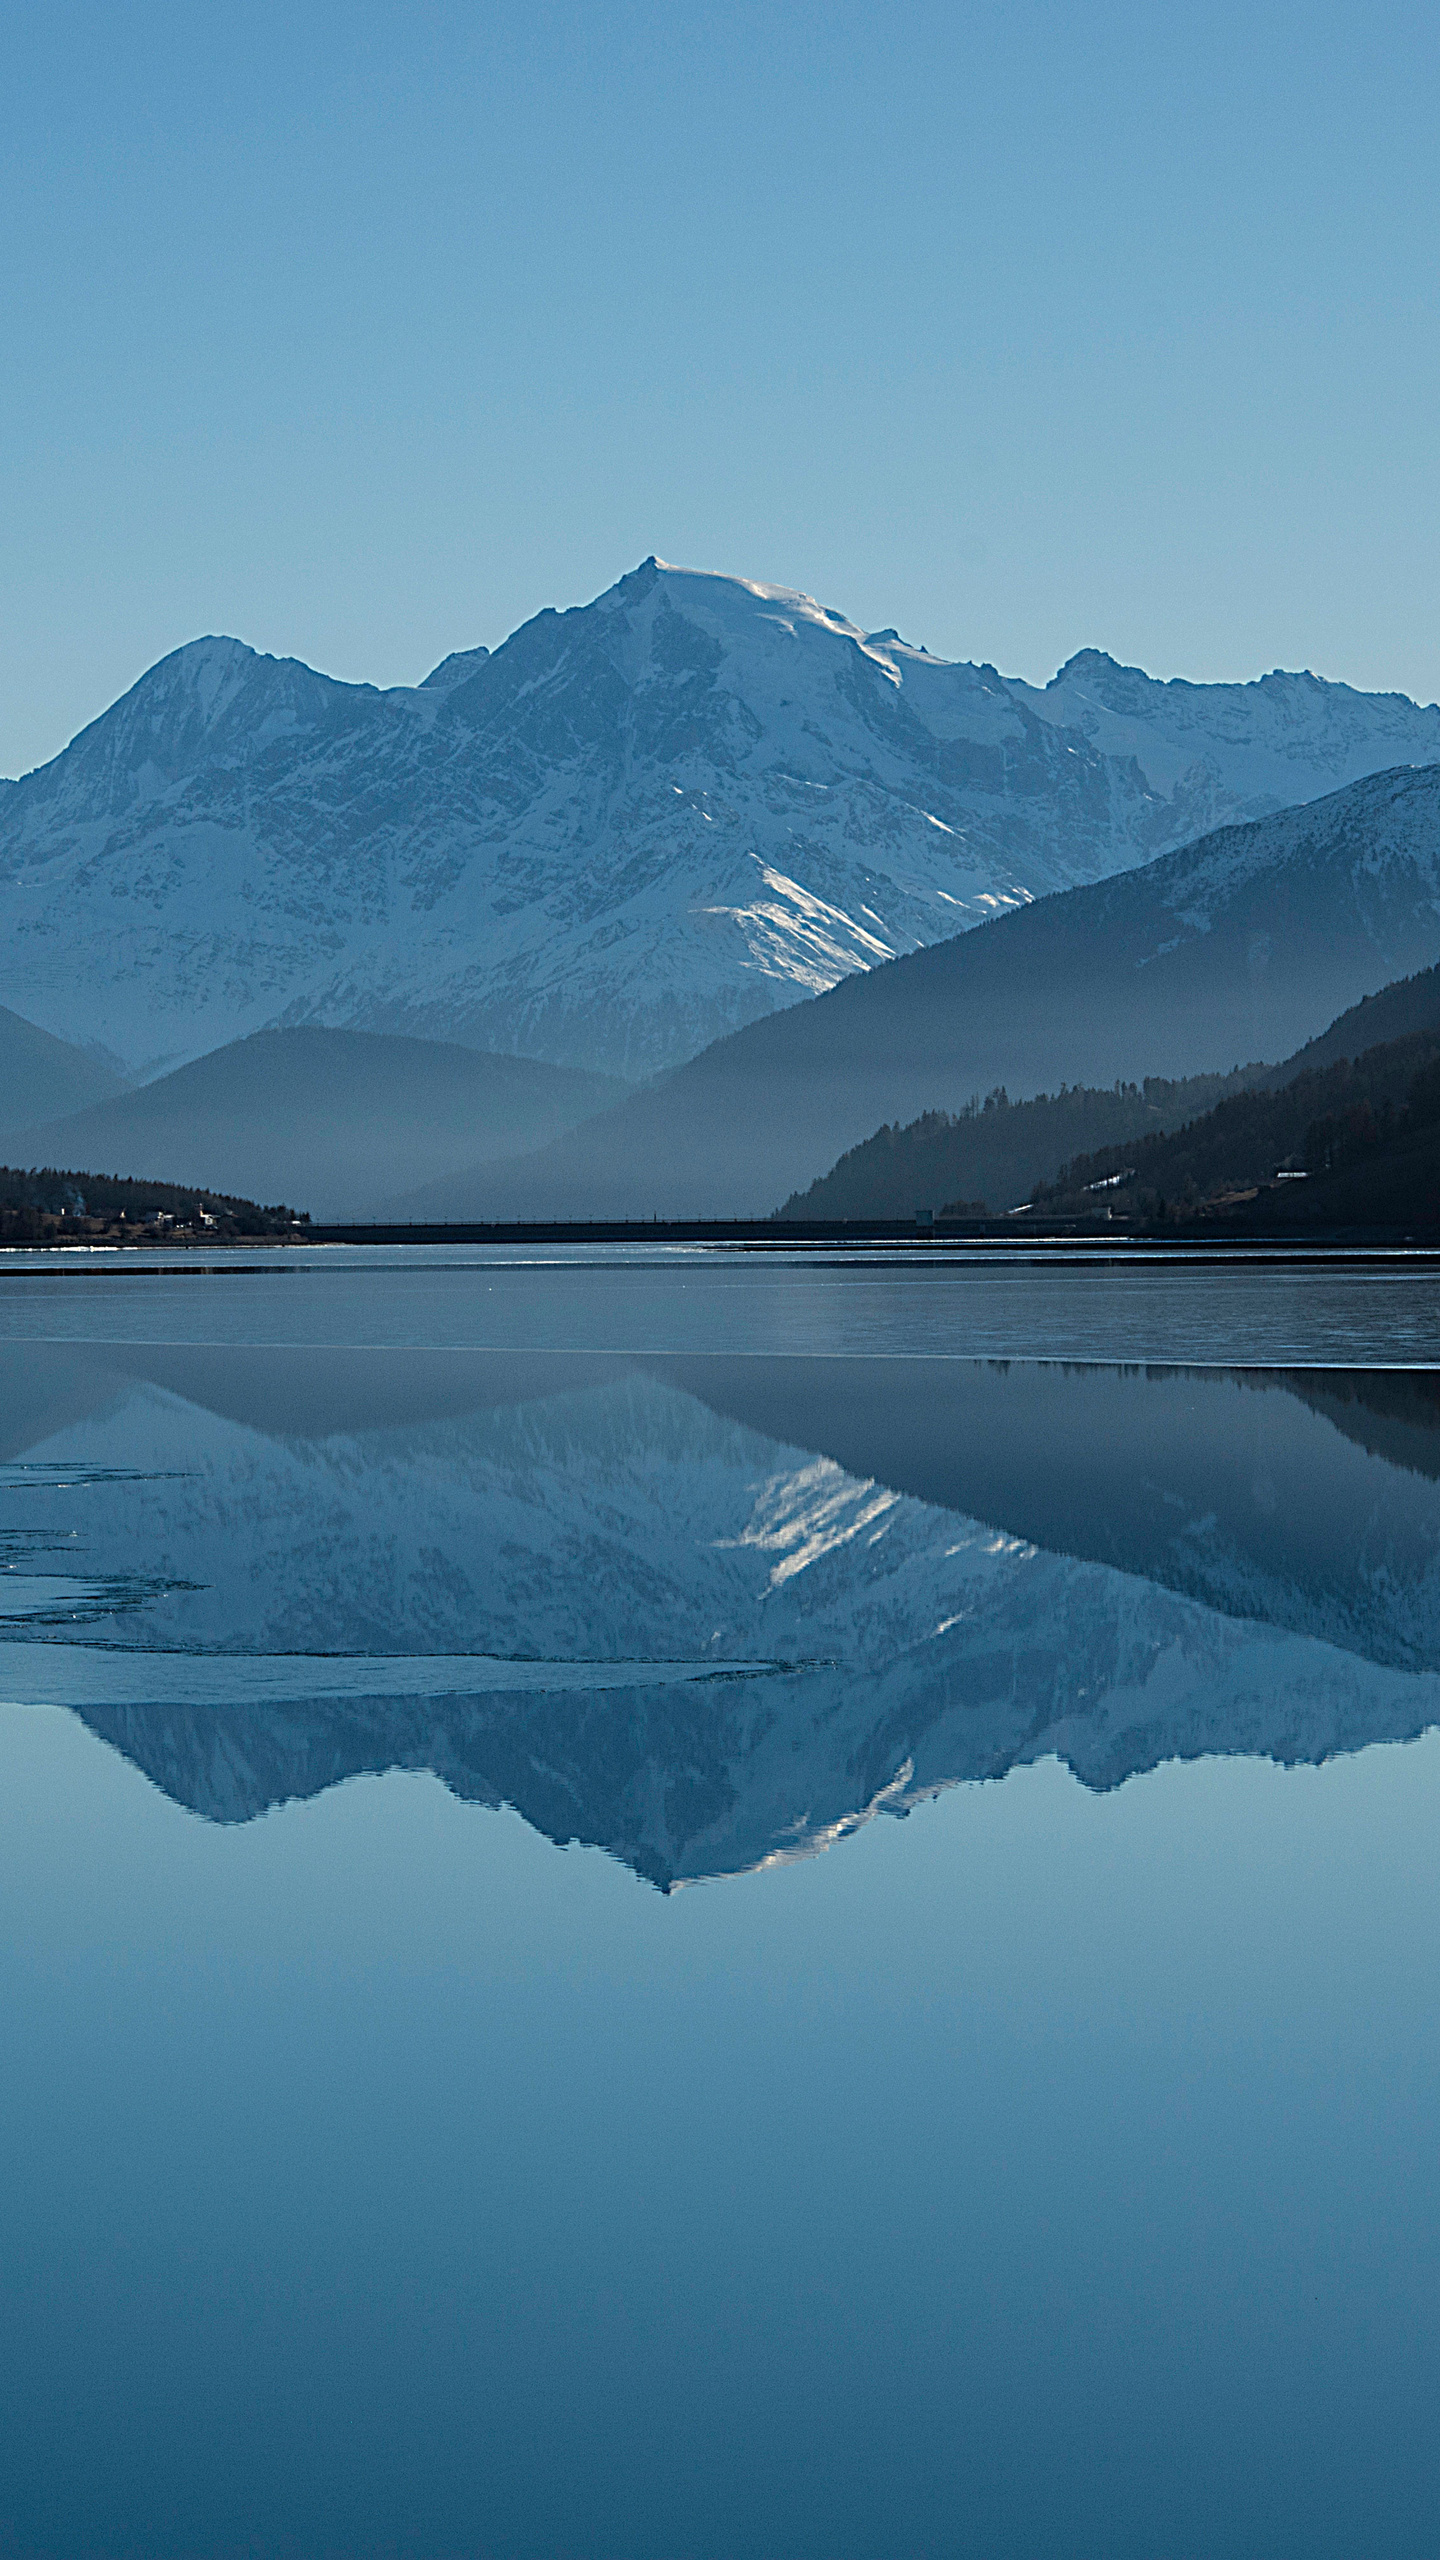 mountain-peak-landscape-clear-blue-sky-lake-winter-5k-cg.jpg